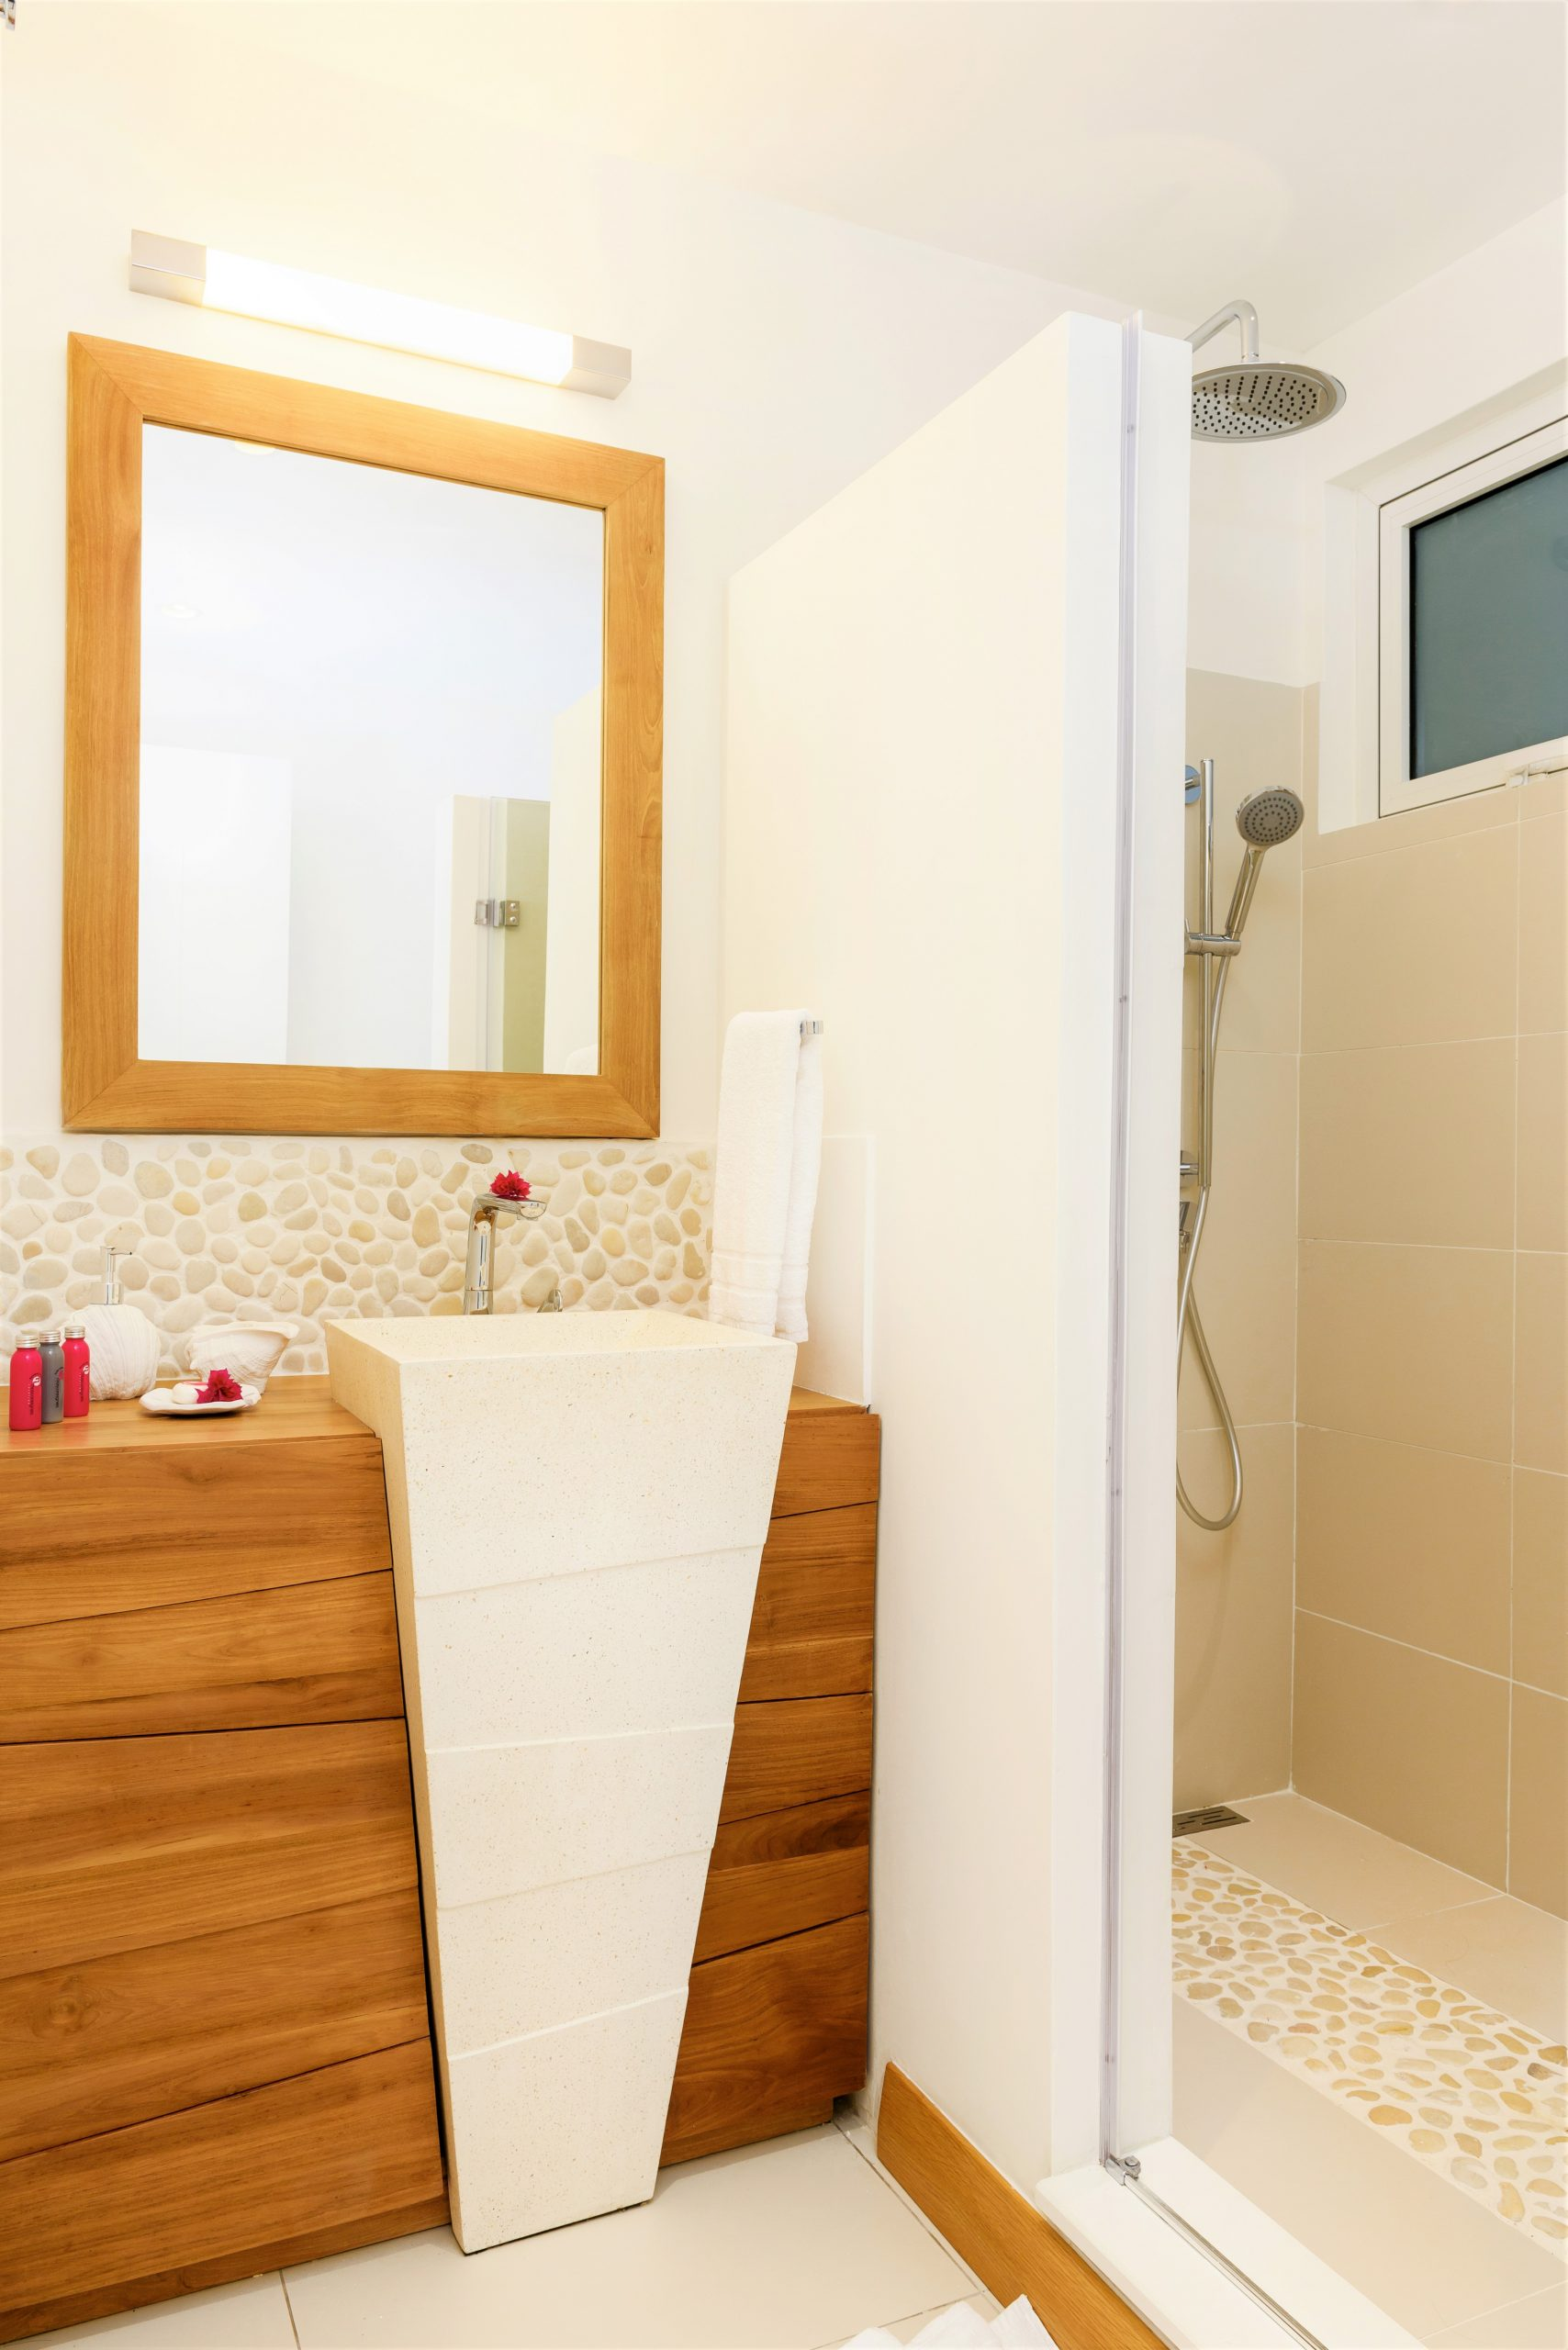 Myra-Seafront-Suites-Penthouses-SUITE-Bathroom-2-scaled.jpg